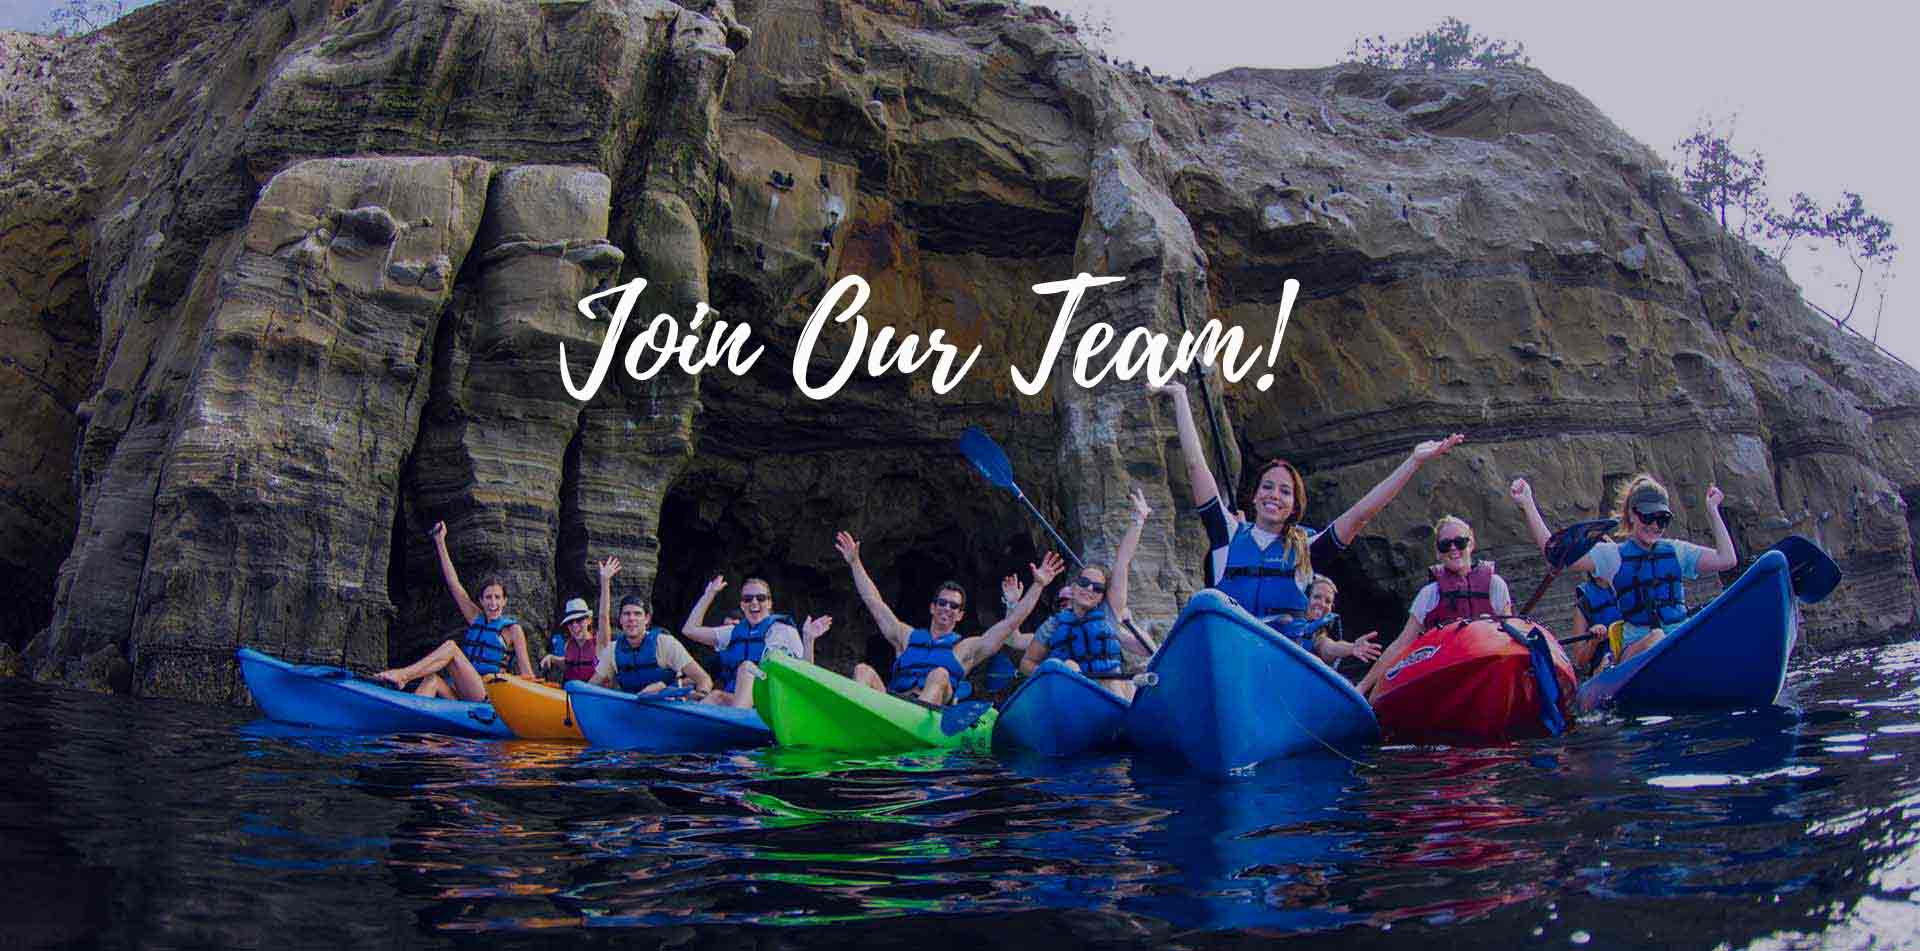 Classic Journeys team kayaking in La Jolla cove sea caves	Join Our Team